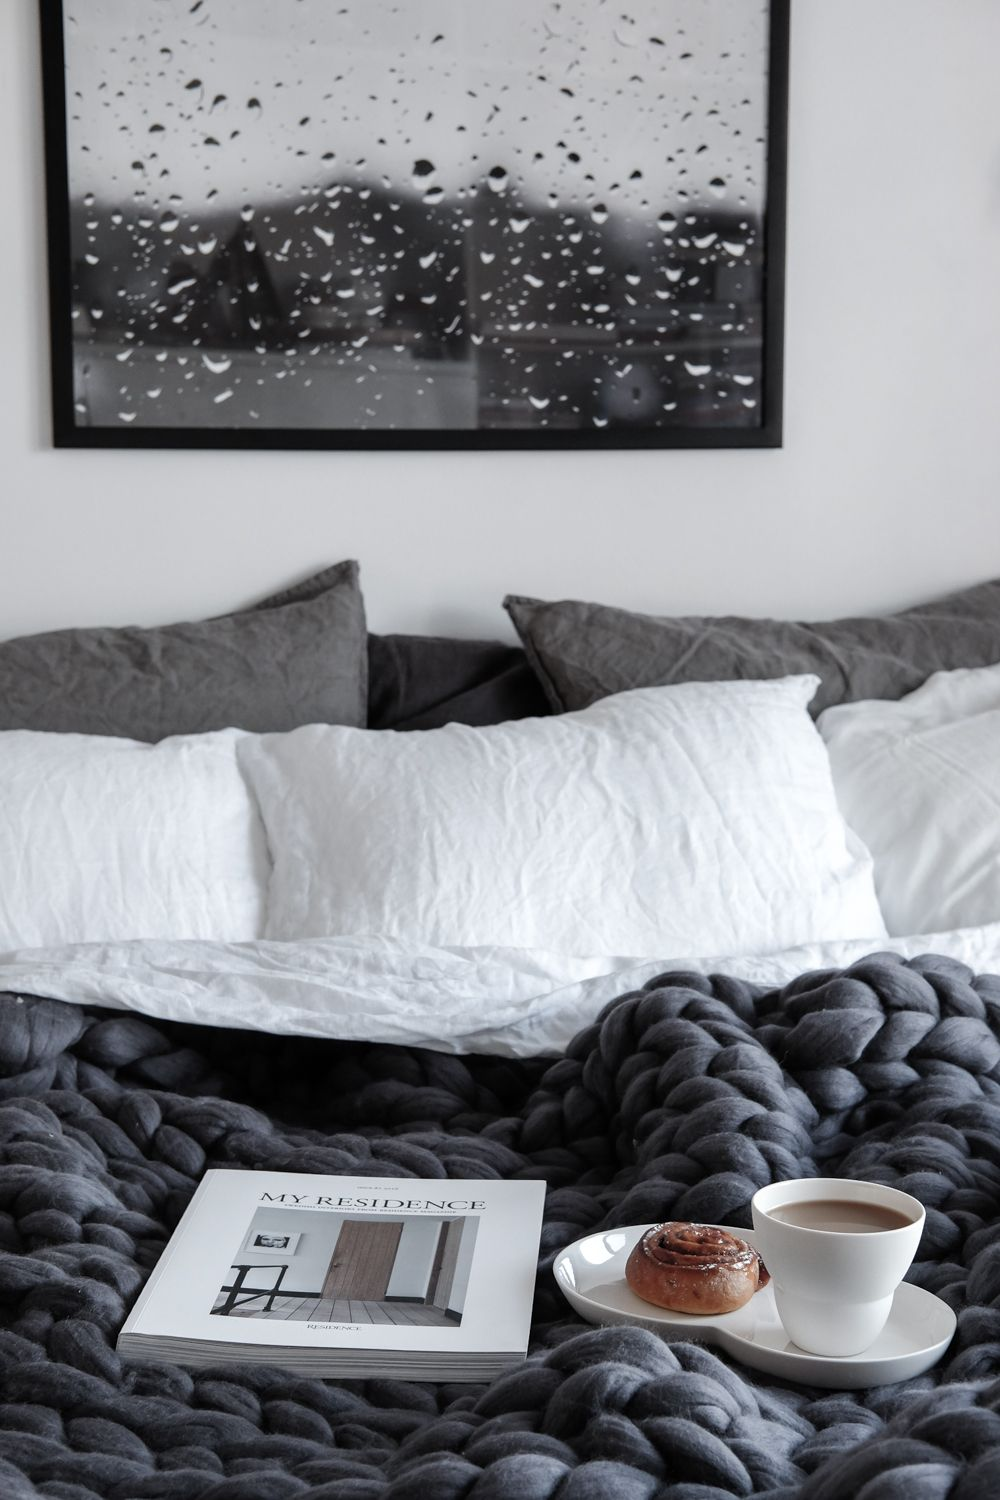 Breakfast in Bed | Scandinavian Grey Bedroom with Raindrops Print and Chunky Wool Blanket